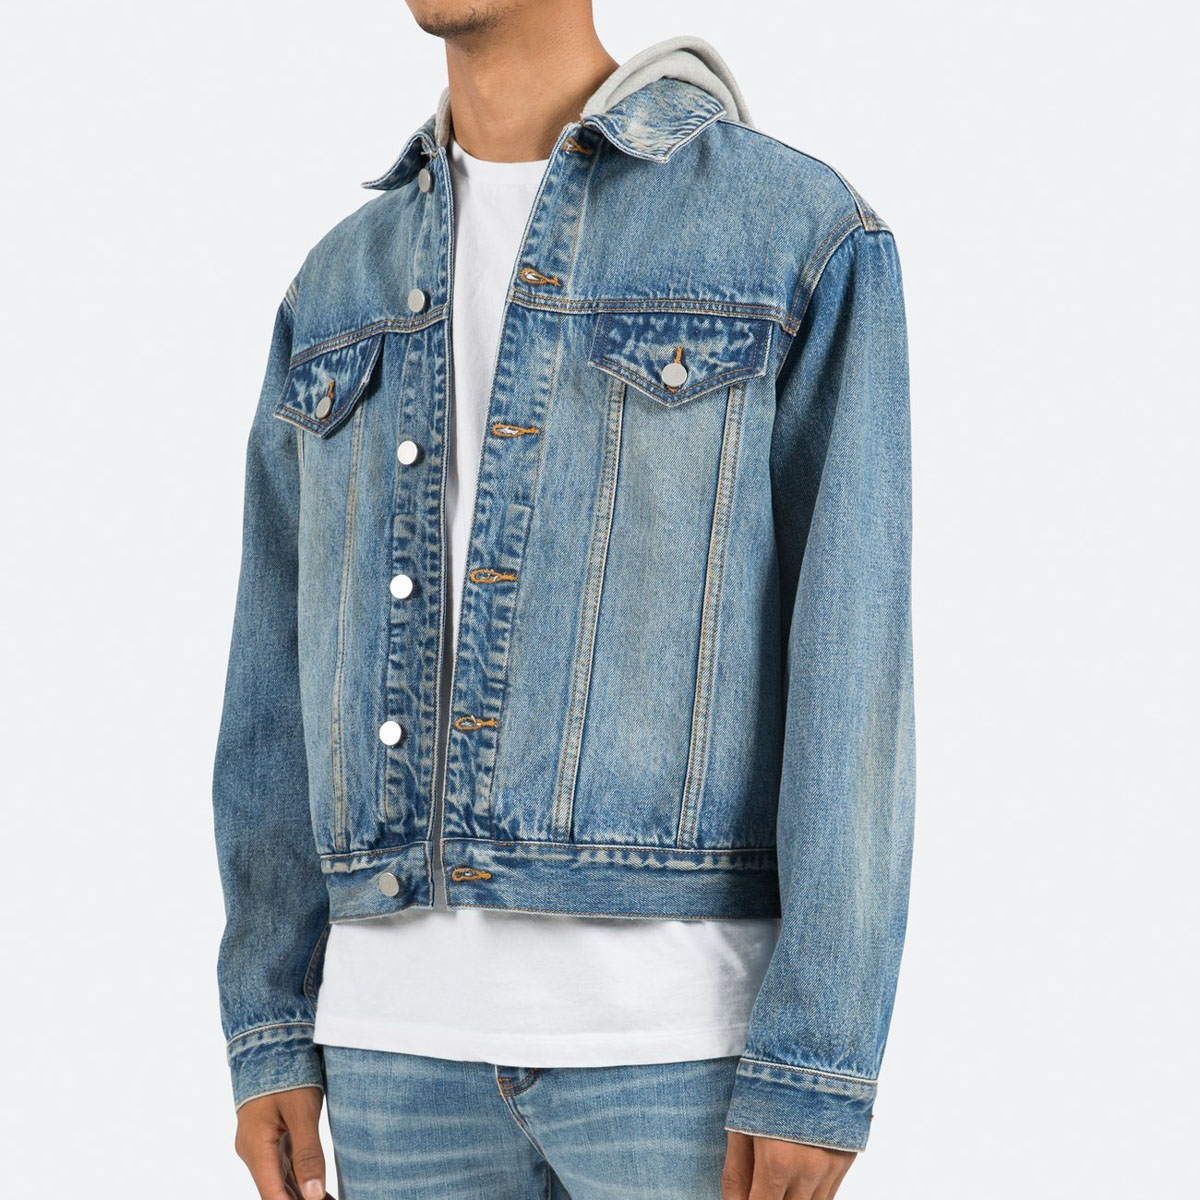 mnml-denim-jacket-payday-pickups-man-for-himself